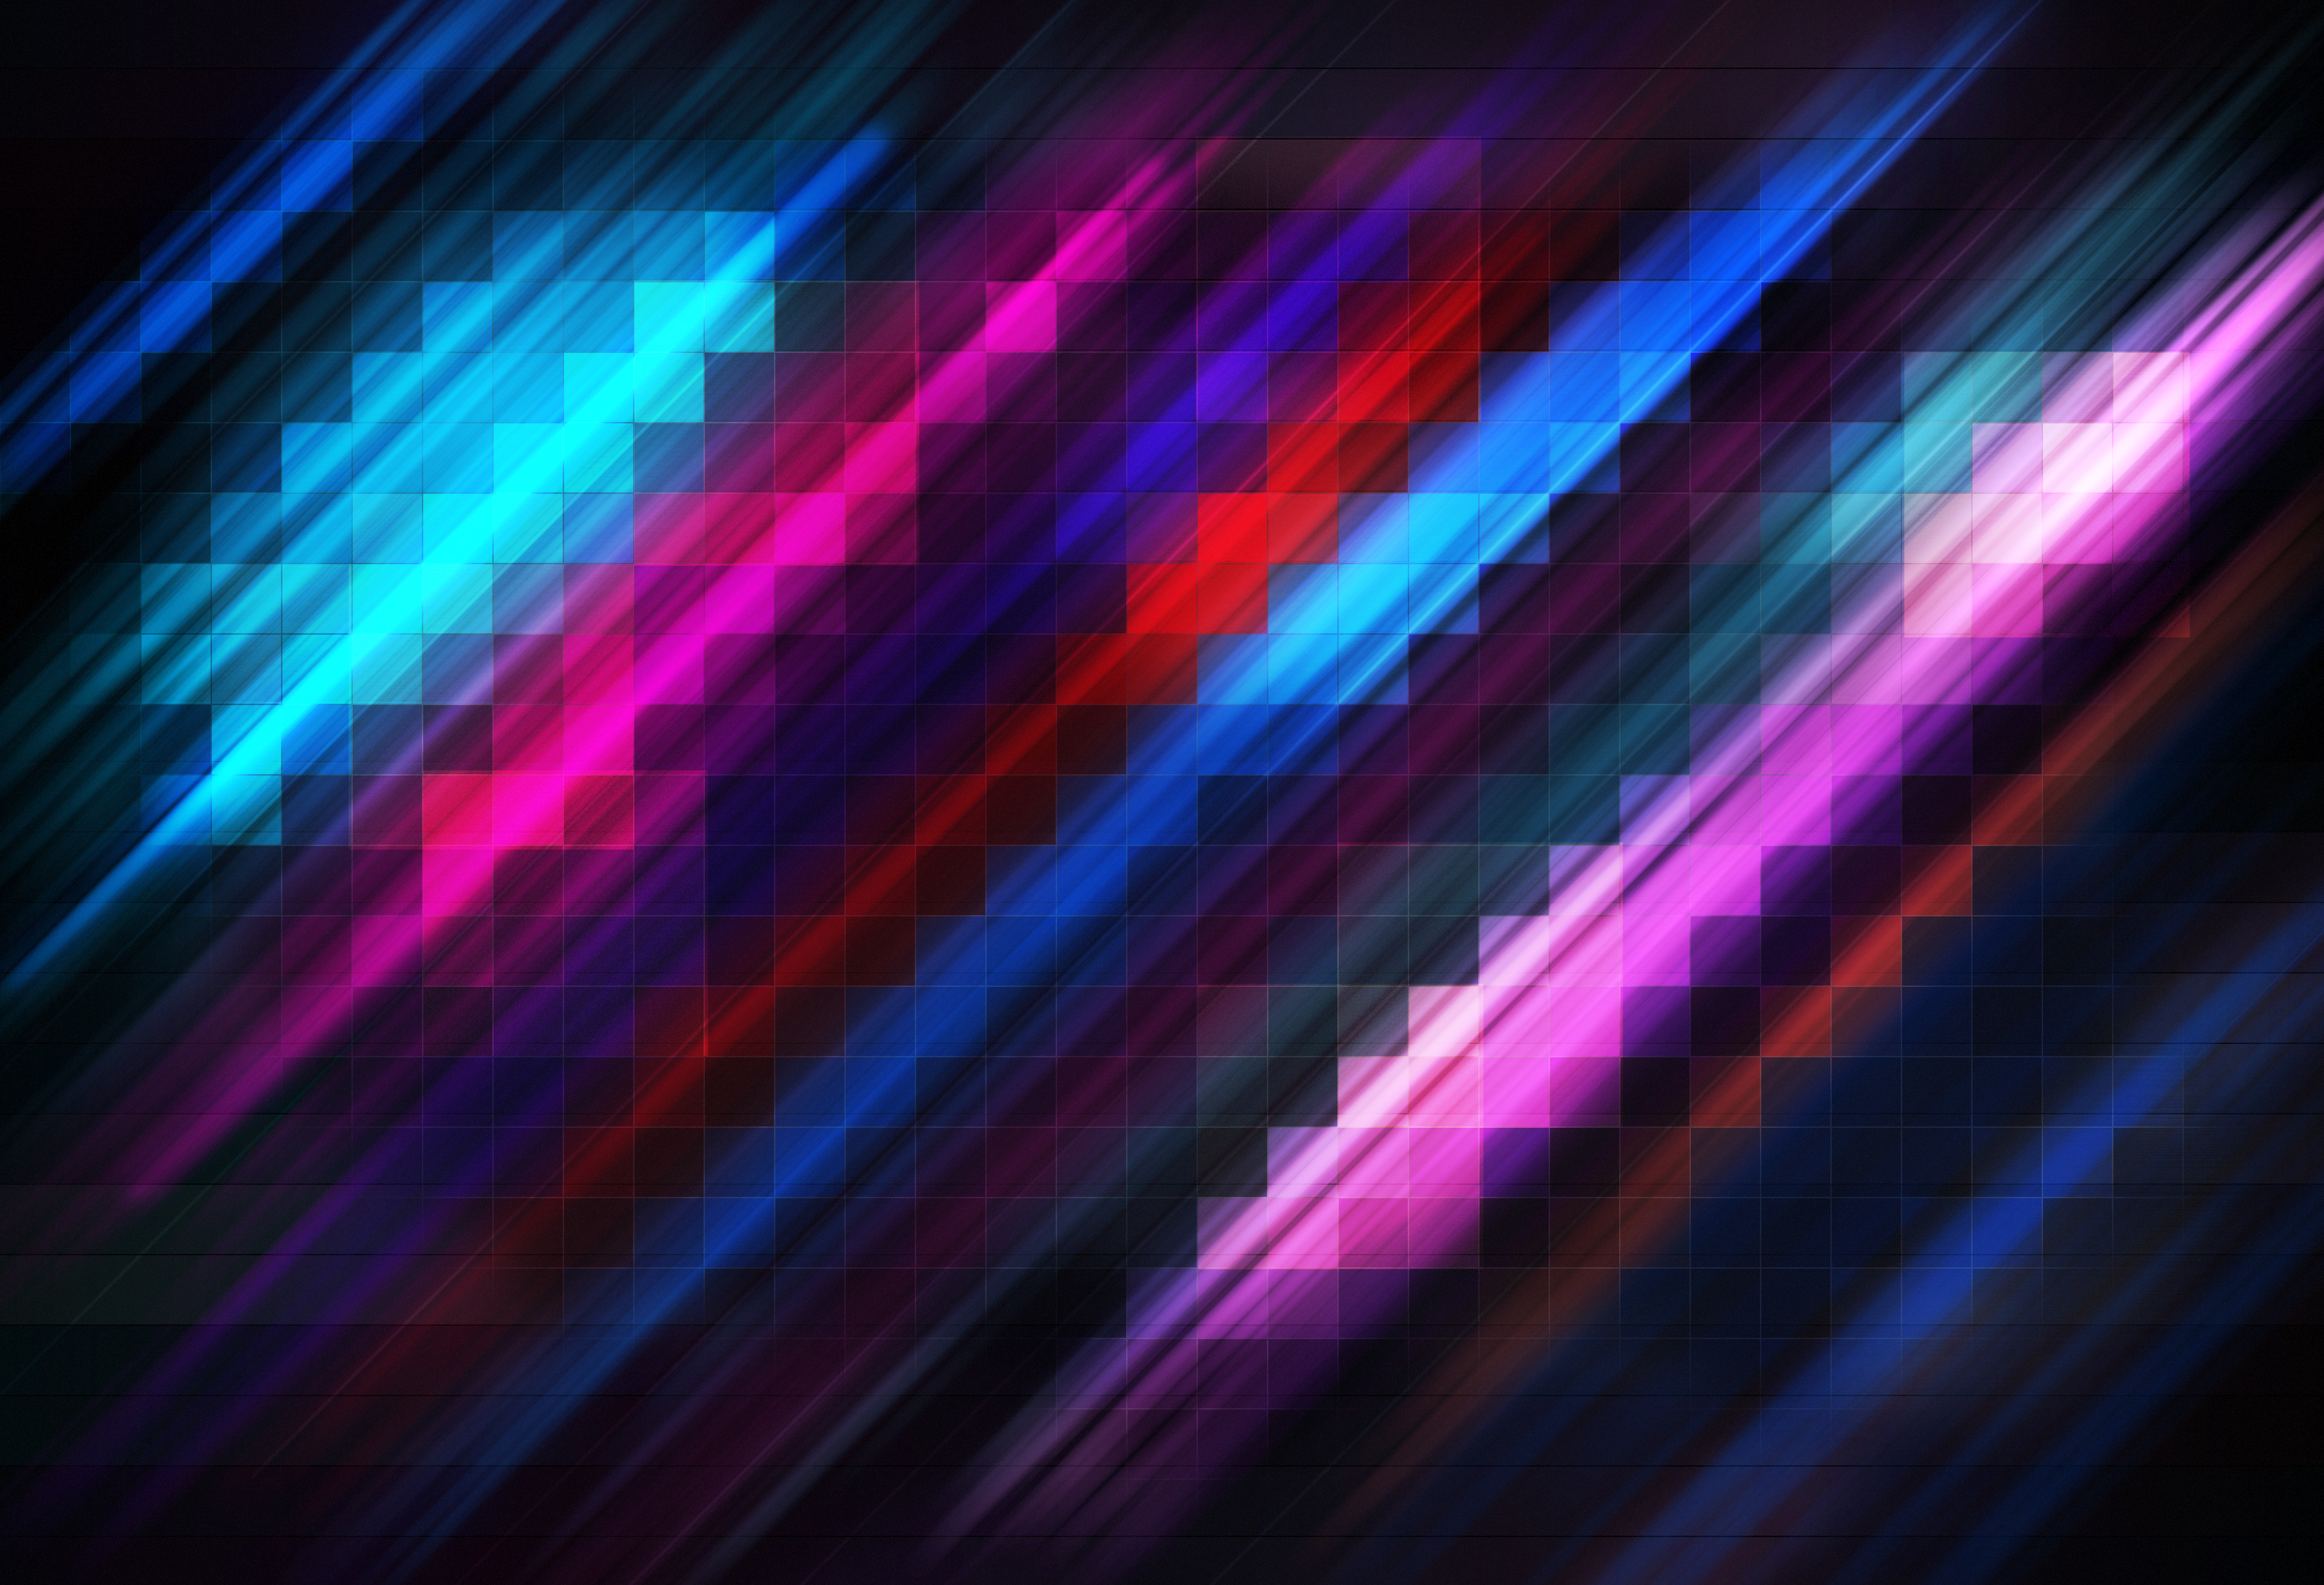 Abstract Colors Flashy Bird 4k: 1366x768 Grid Abstract Colorful 4k 1366x768 Resolution HD